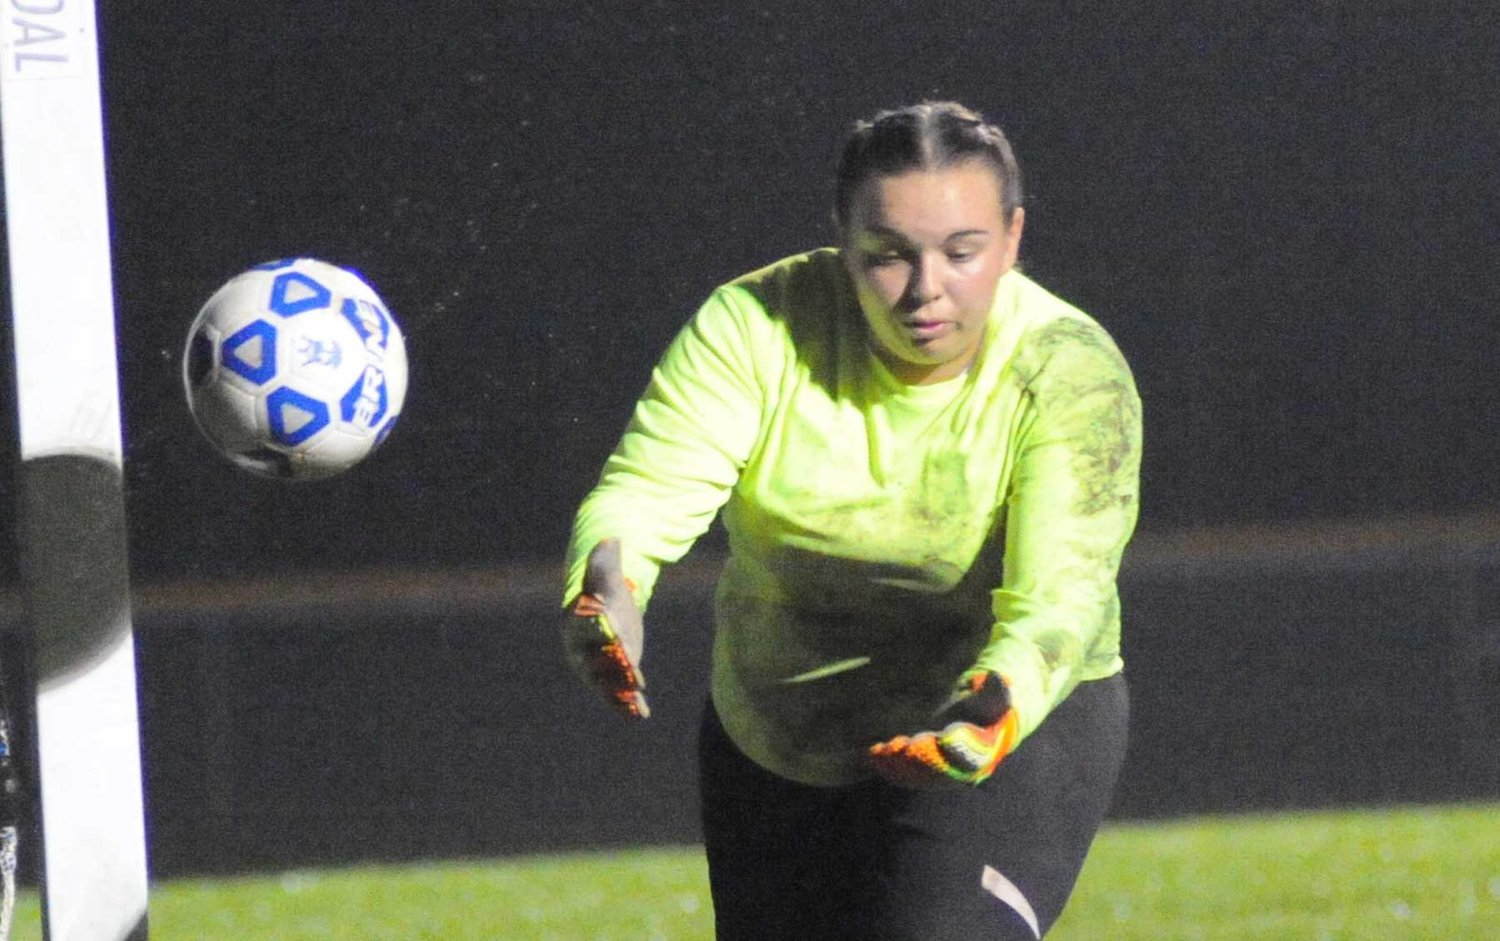 TRR photos by Ted Waddell